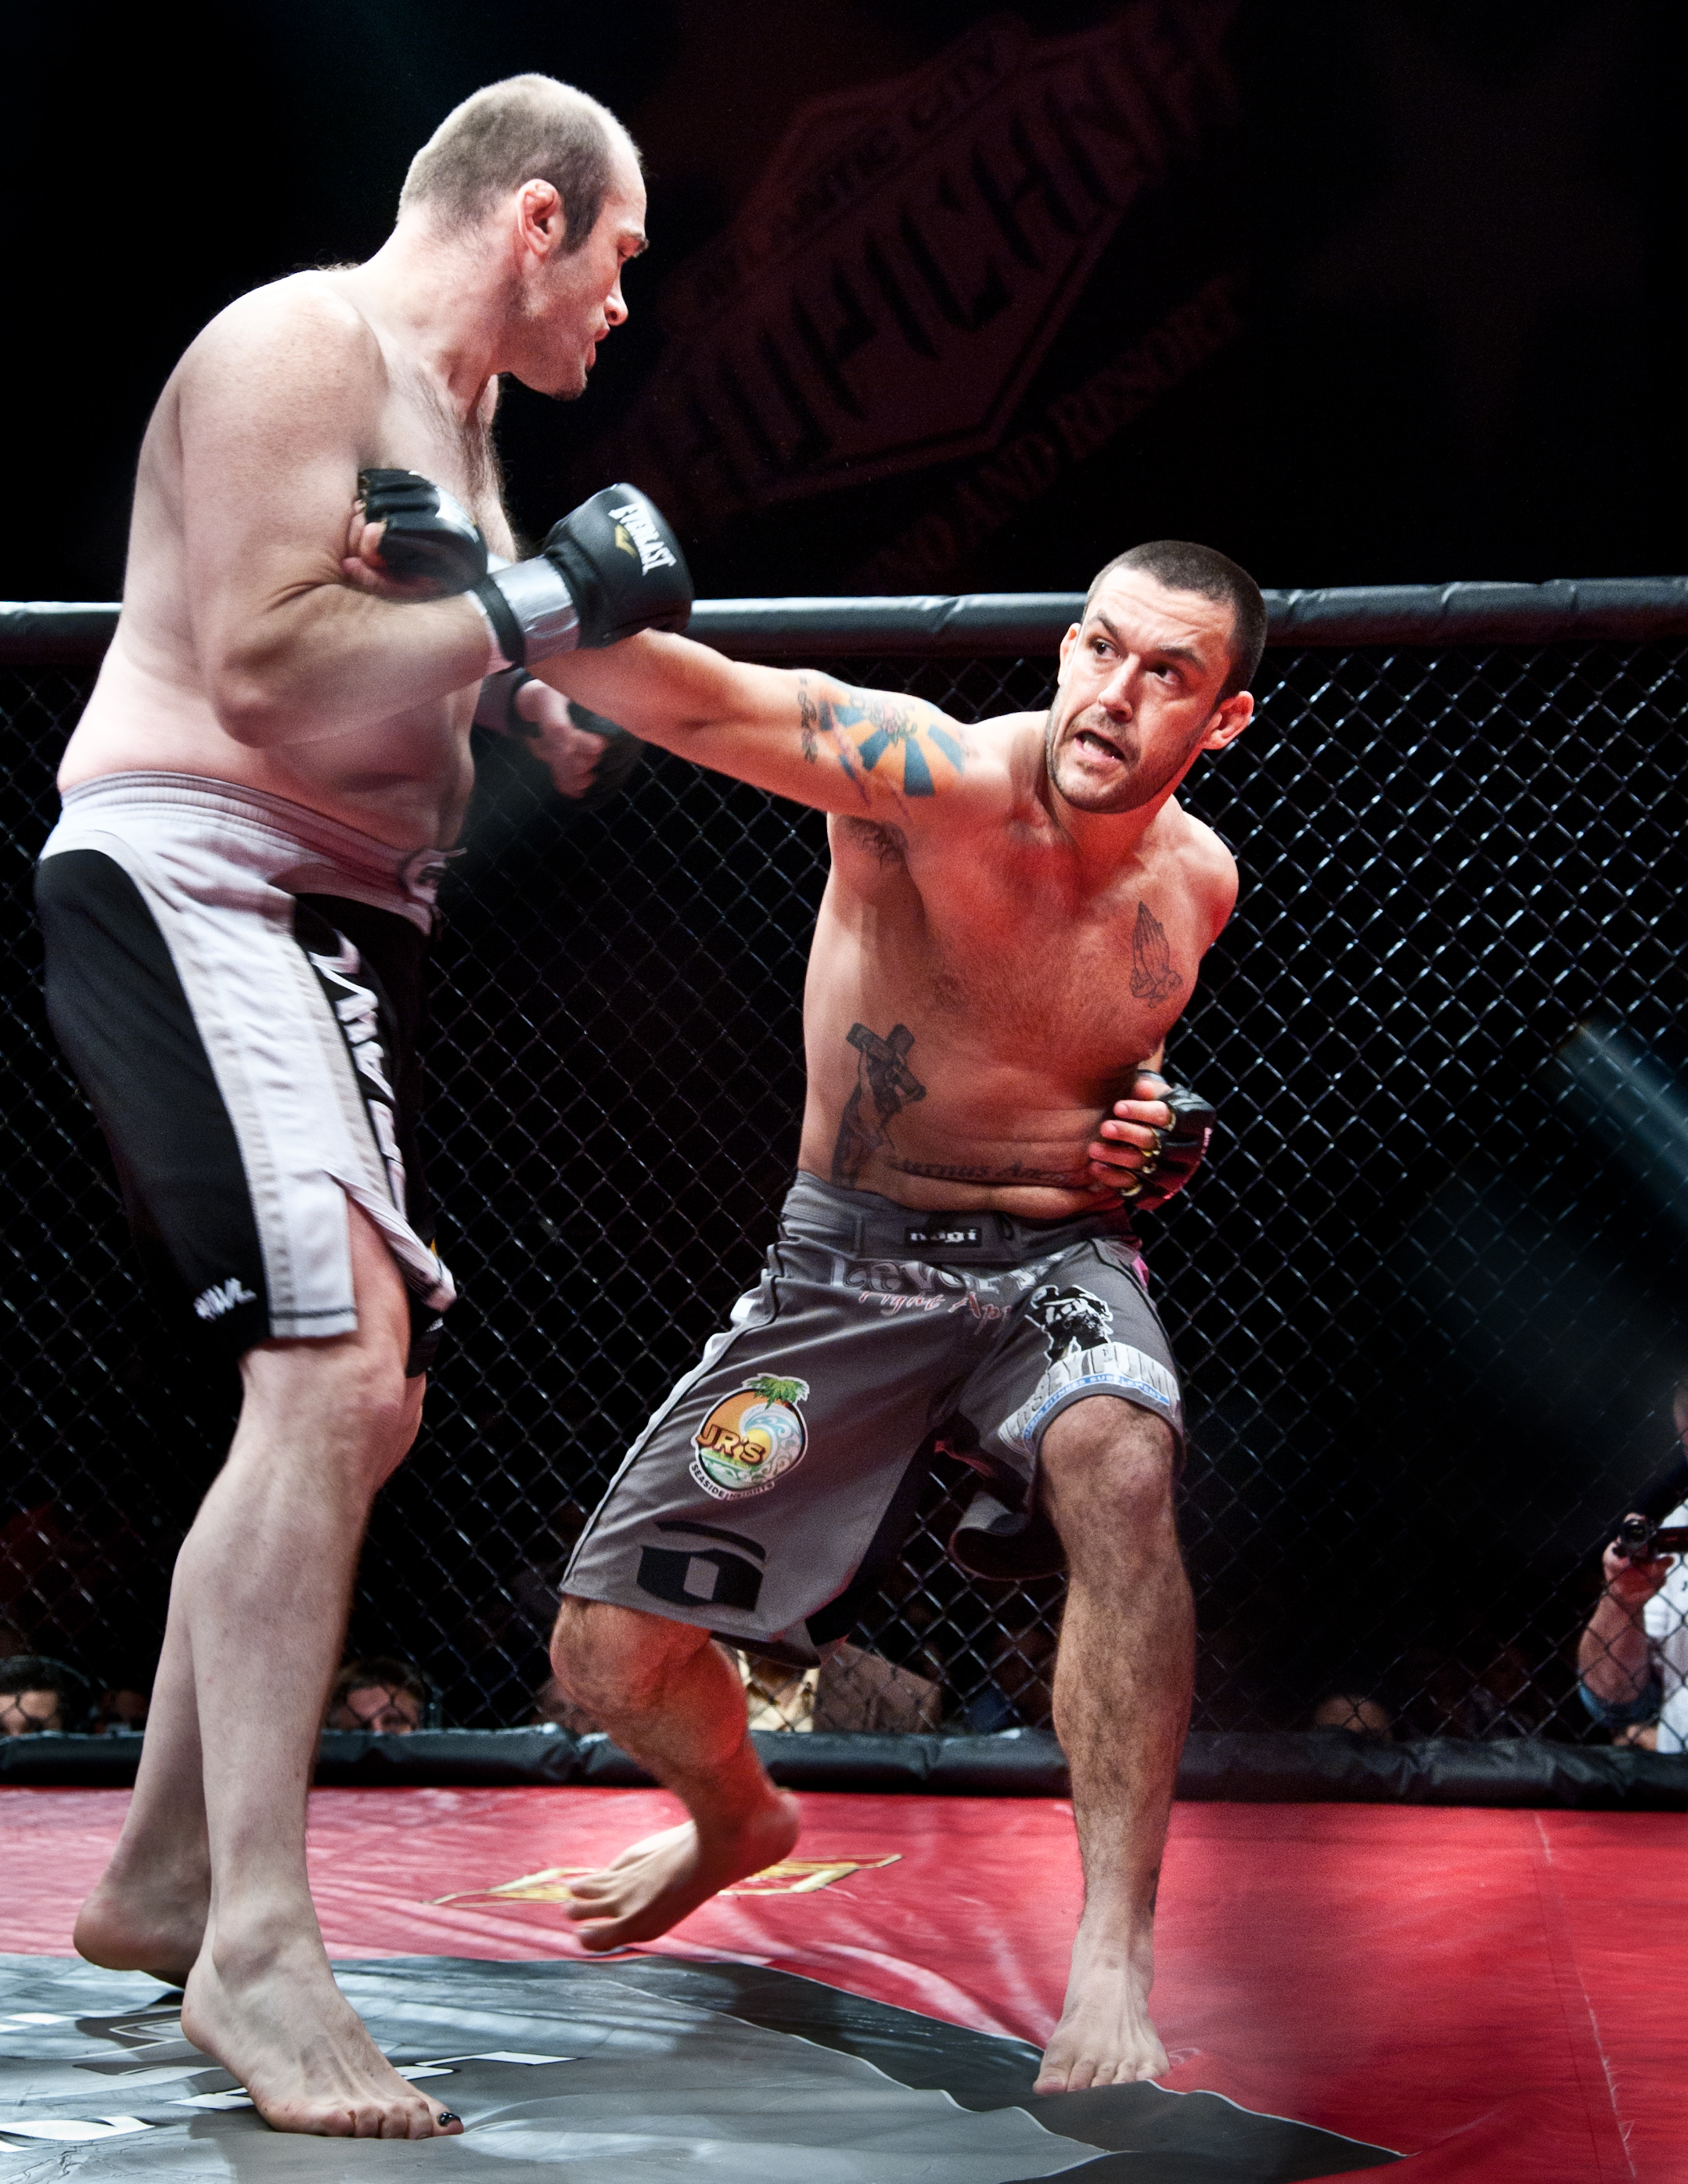 Tom DeBlass fighting MMA